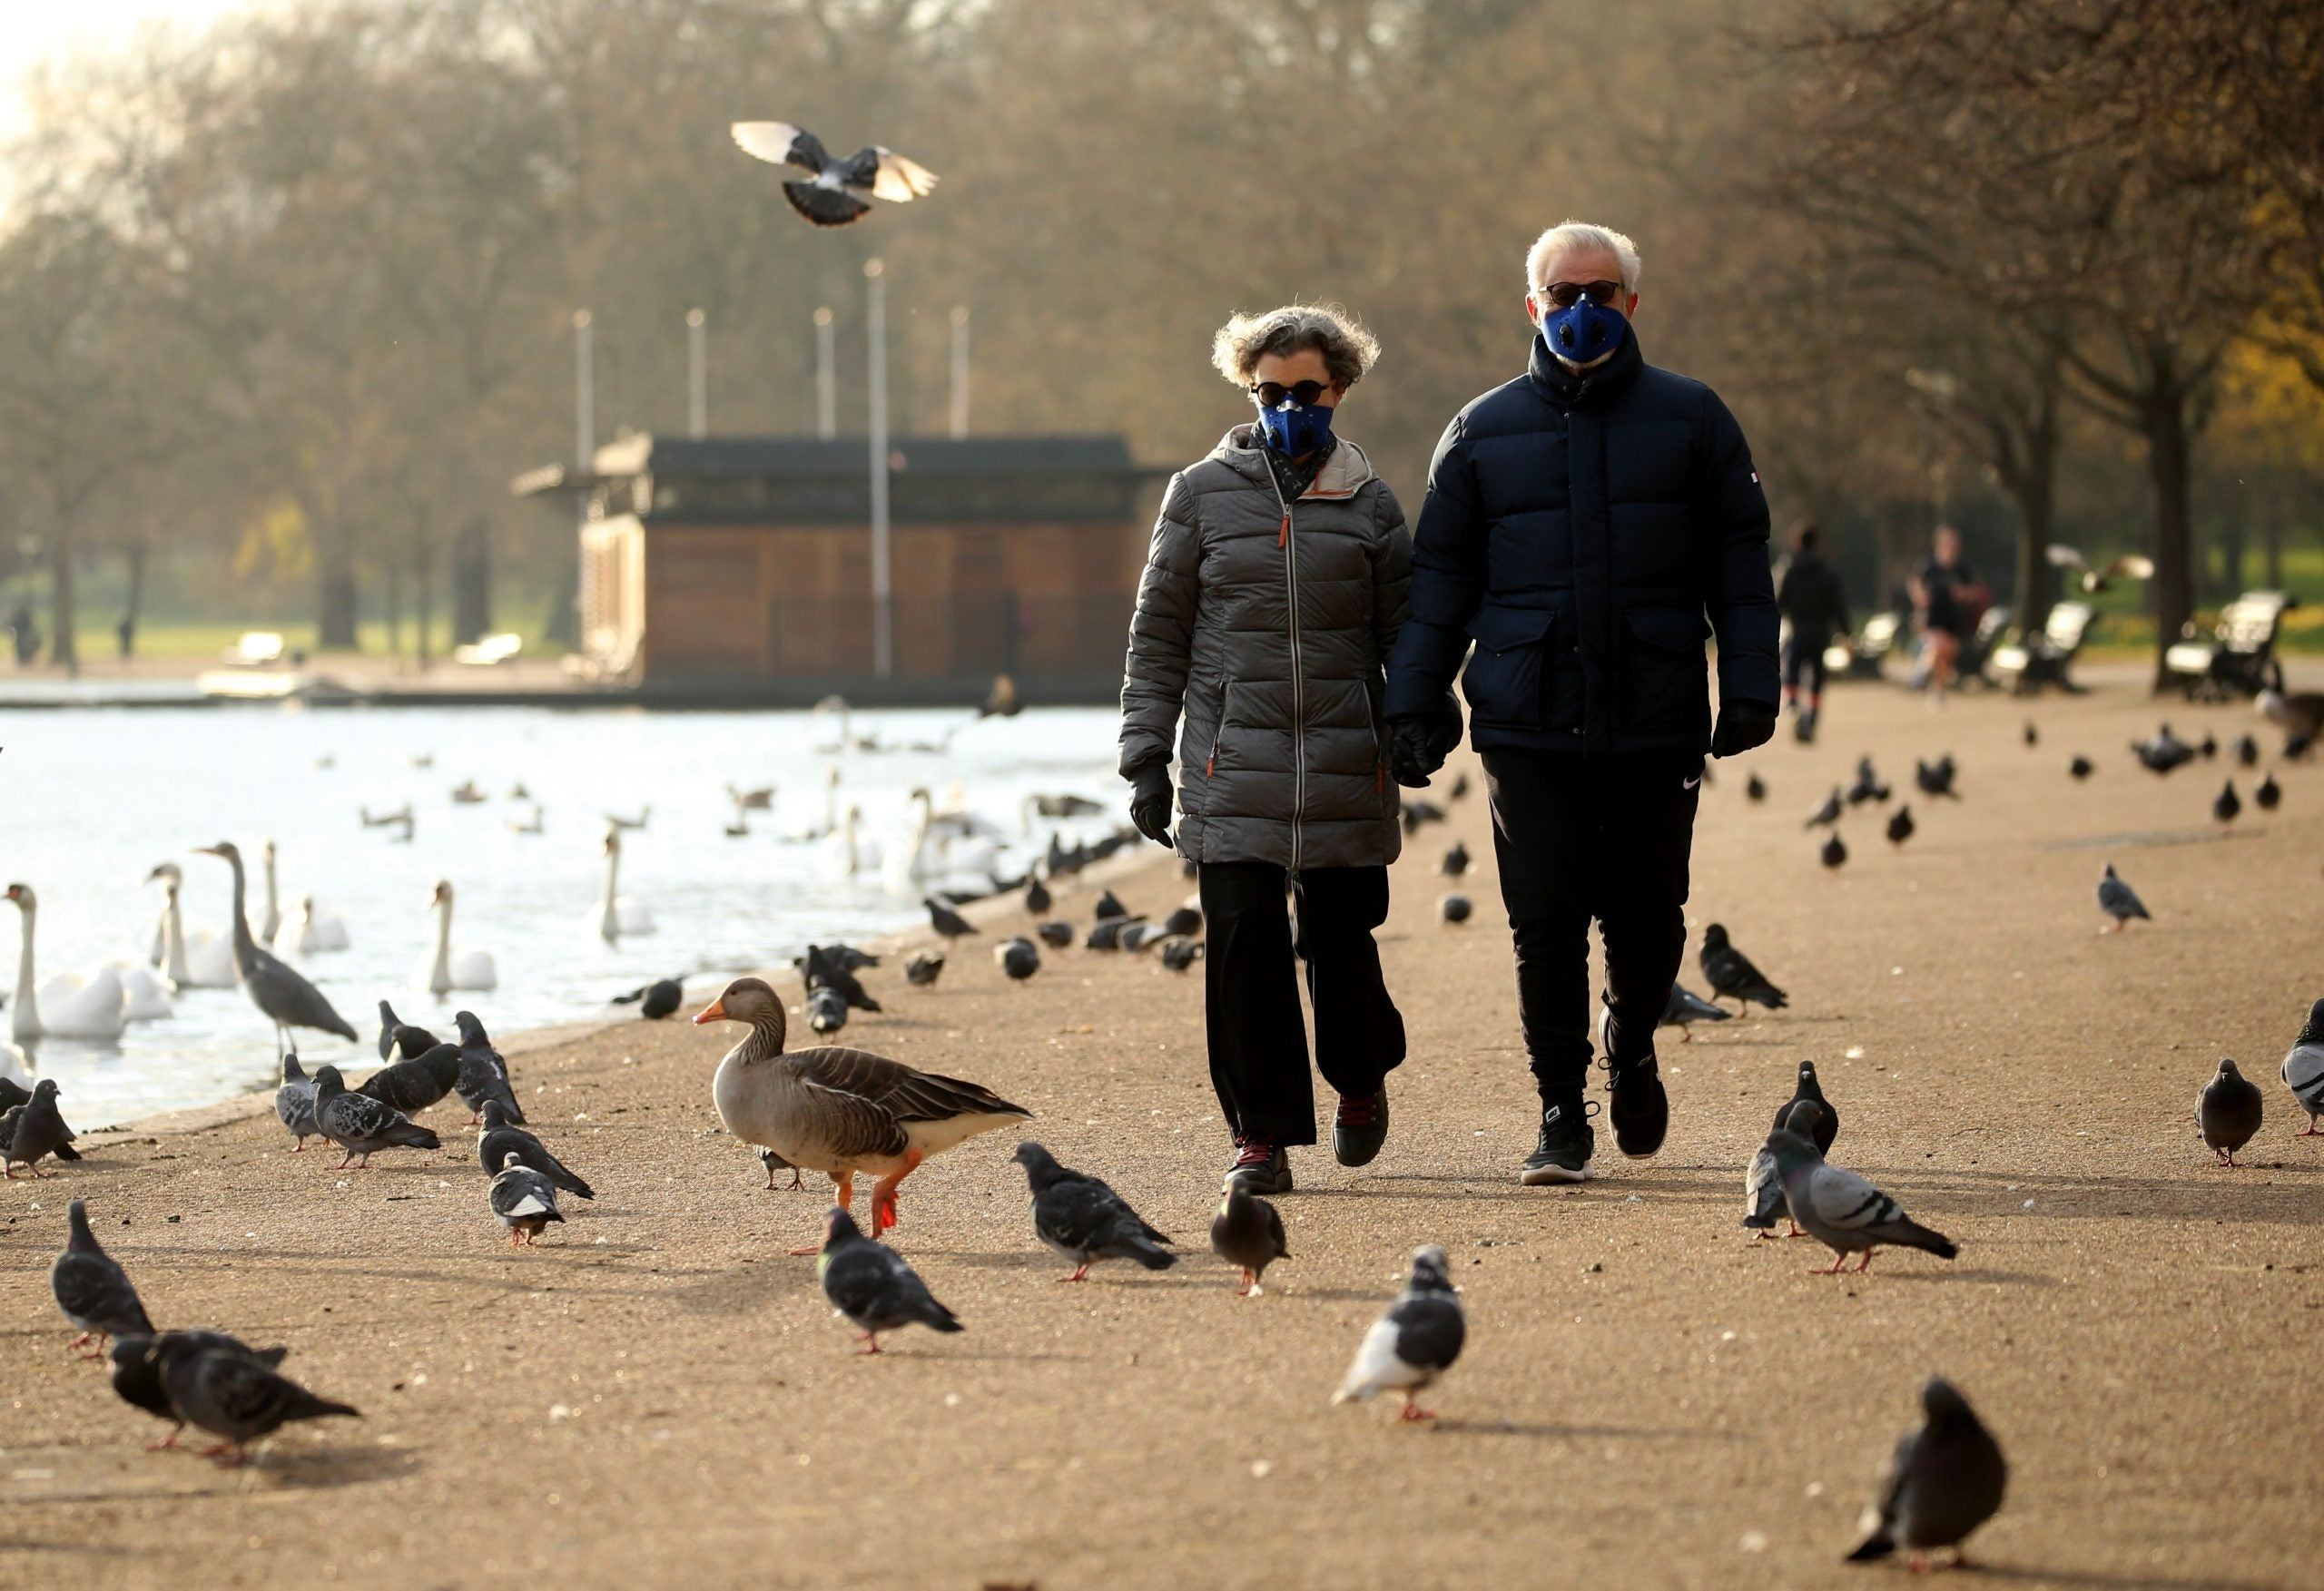 I have always appreciated London's parks and its efforts to keep them open show the city at its best